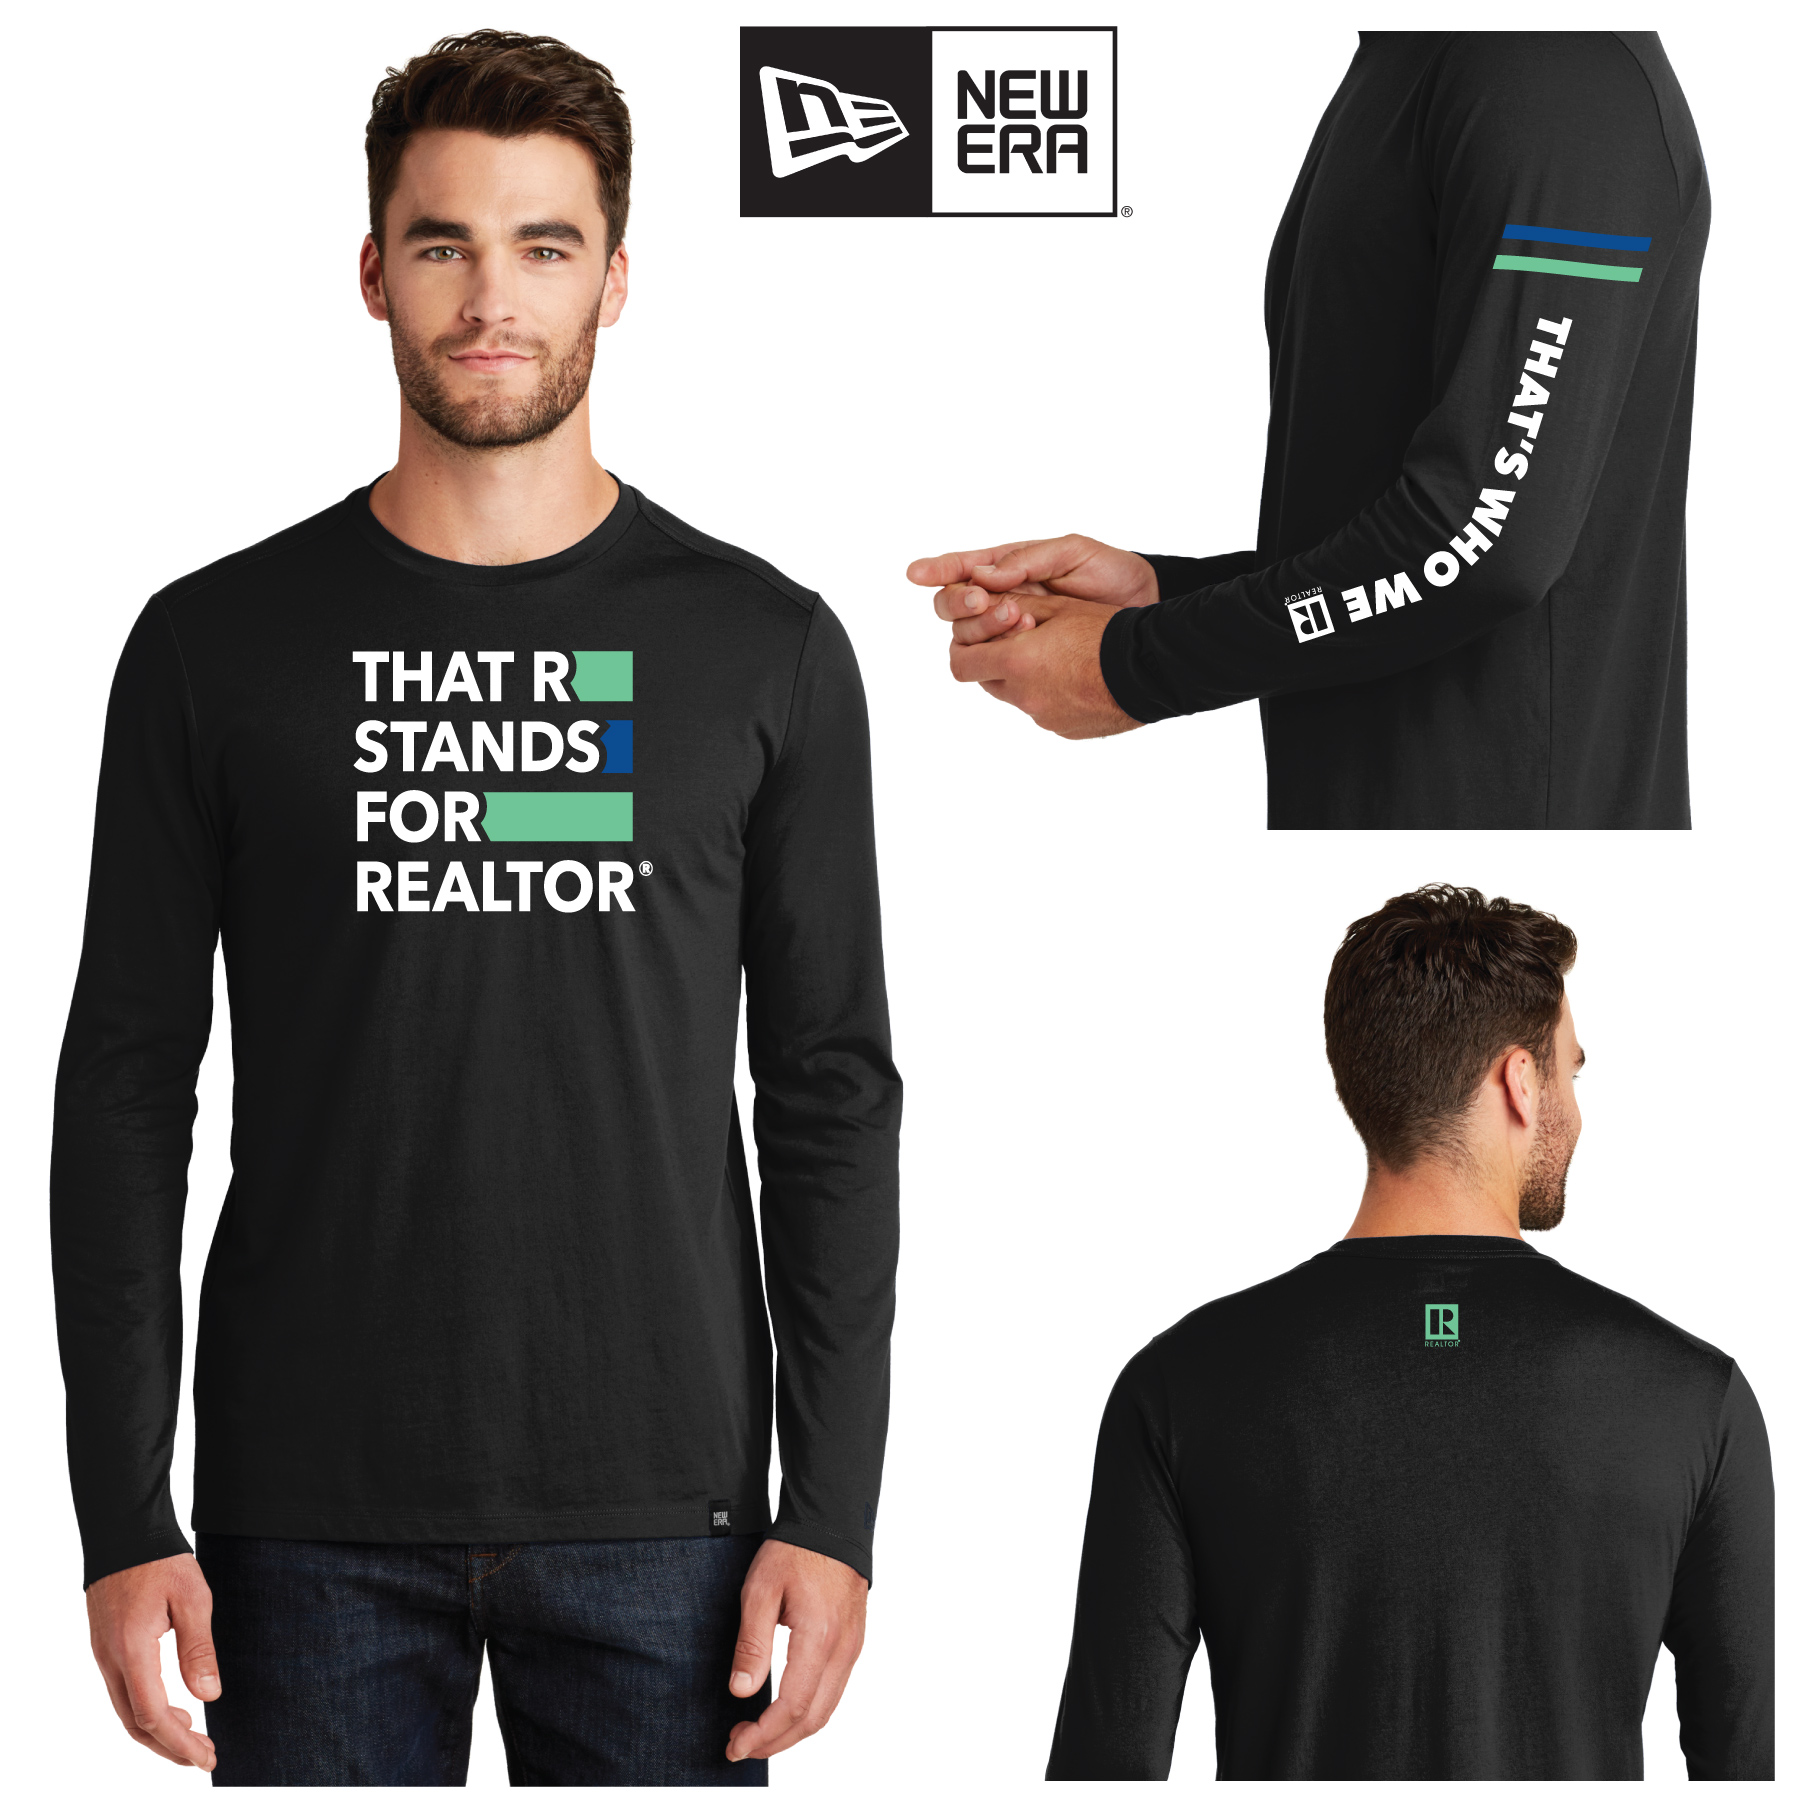 """That R Stands for REALTOR®"" Long Sleeve New Era® Tee Shirt TRSFR,twwr,ThatsWhoWeR,Thats,TWWR,ThatWho,ThatsWho,Twwr,Thats,Whos,We,Ares,Tees,T-shirt,Tee,Casual,Values,Tees,NewEra,Longs,Sleeves"